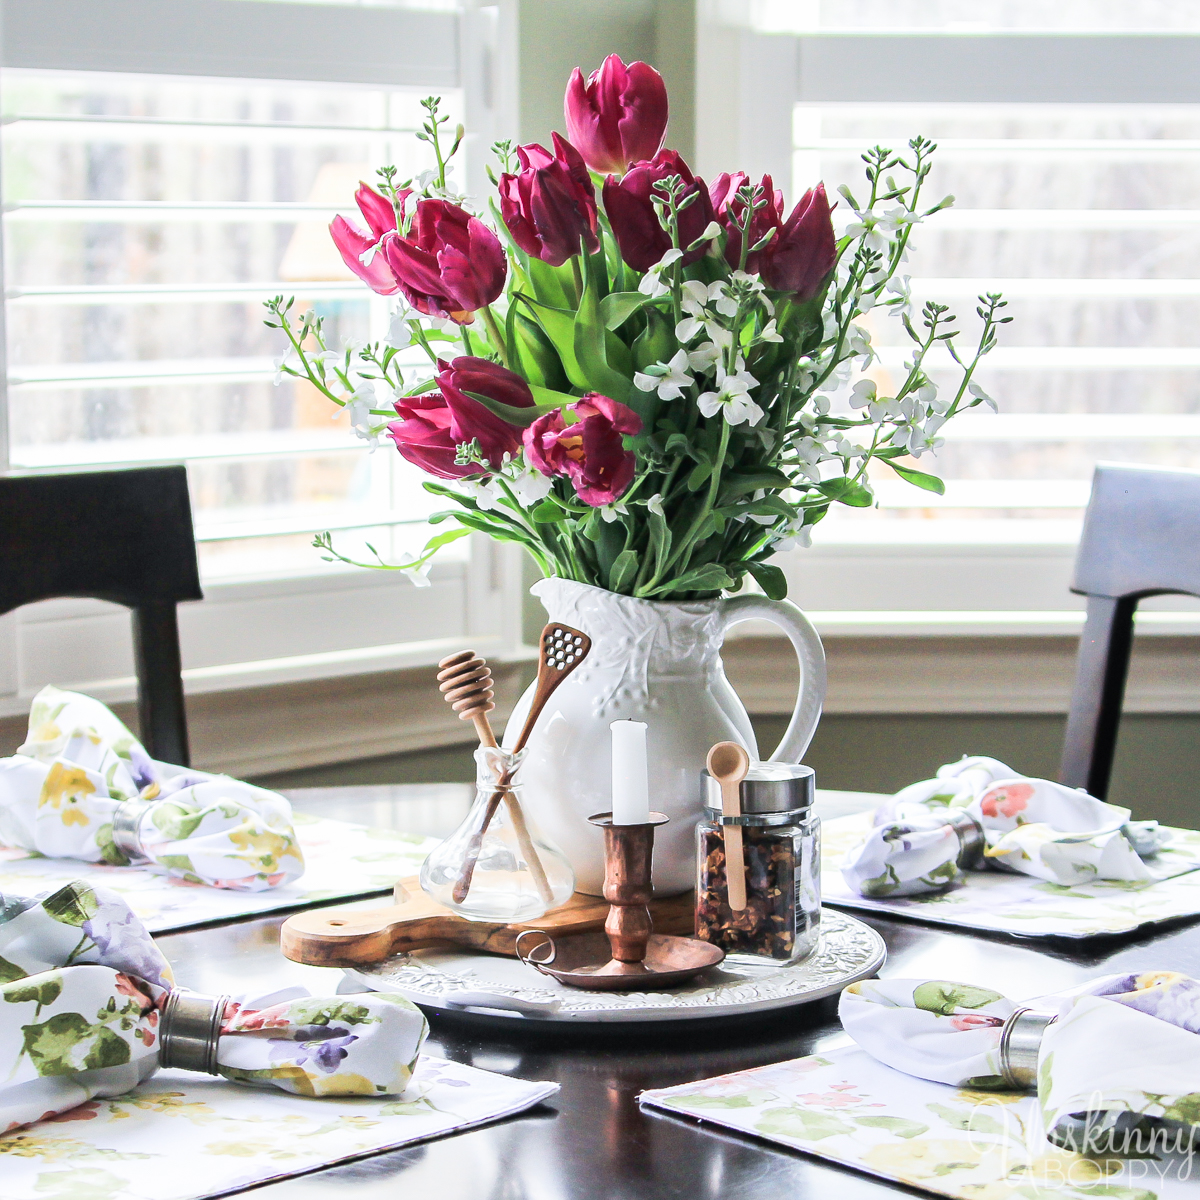 Find Some New Fl Placemats And Napkins To Lighten Up Your Dark Kitchen Table Add Tulips In A Carafe For The Perfect Spring Centerpiece